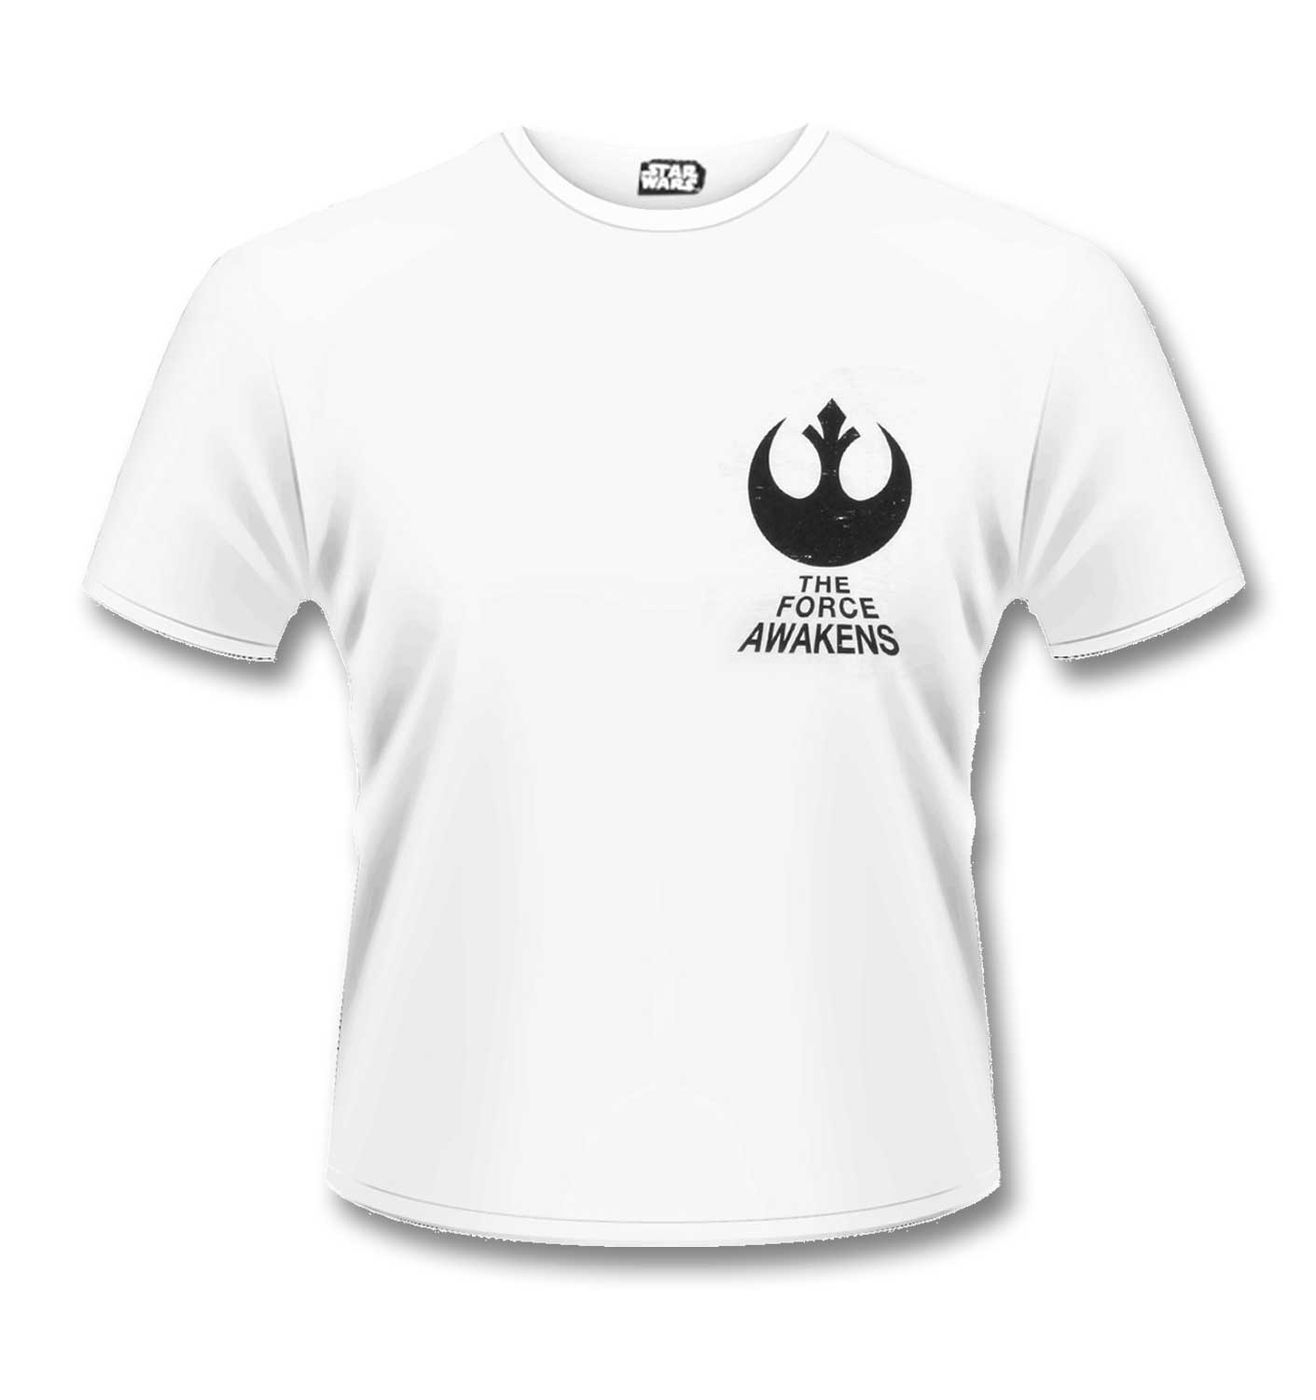 X-Wing t-shirt - Official Star Wars The Force Awakens merchandise